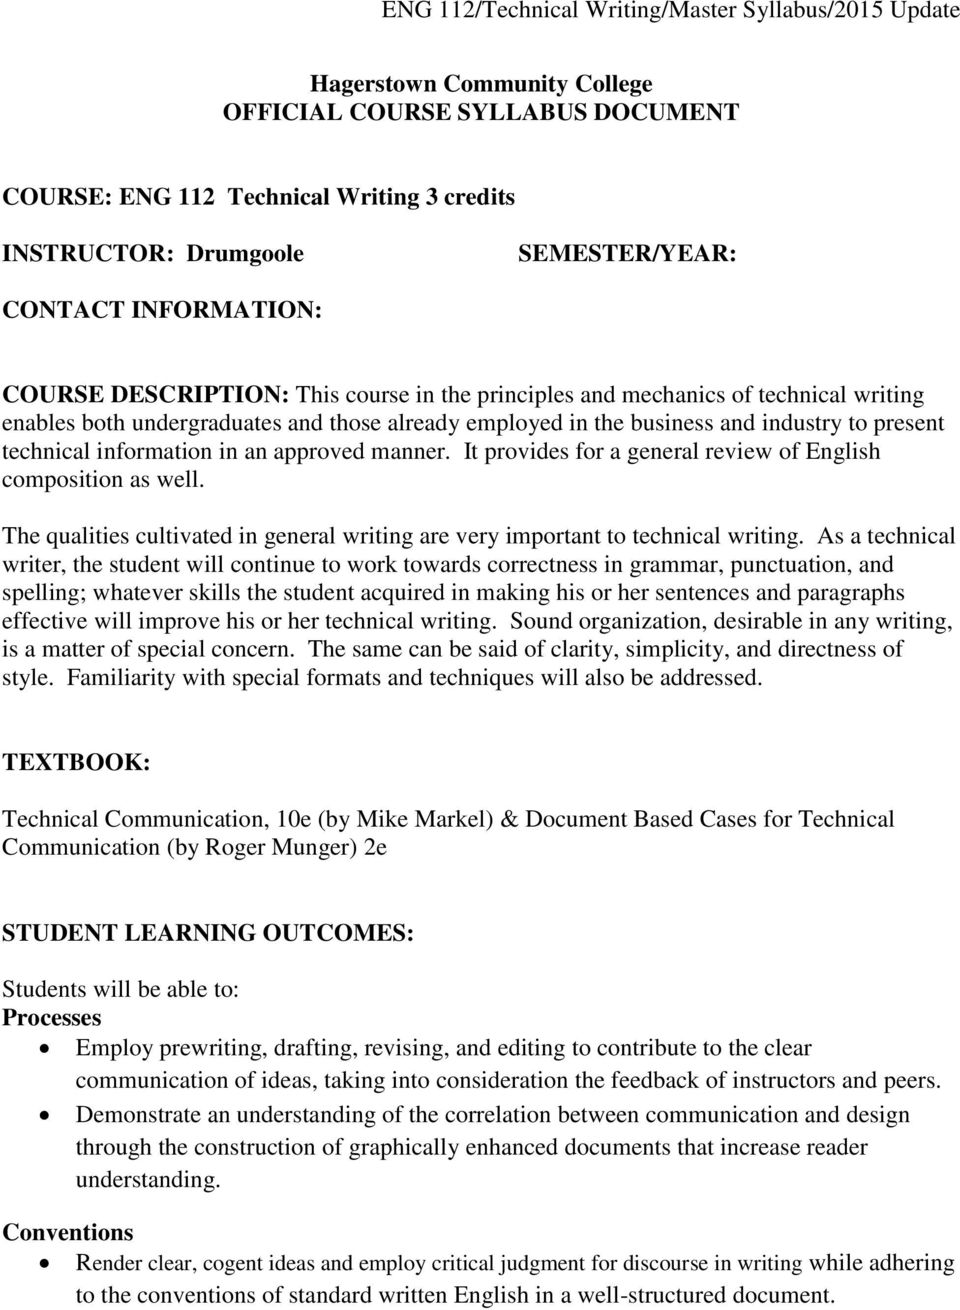 Hagerstown Community College Official Course Syllabus Document Pdf